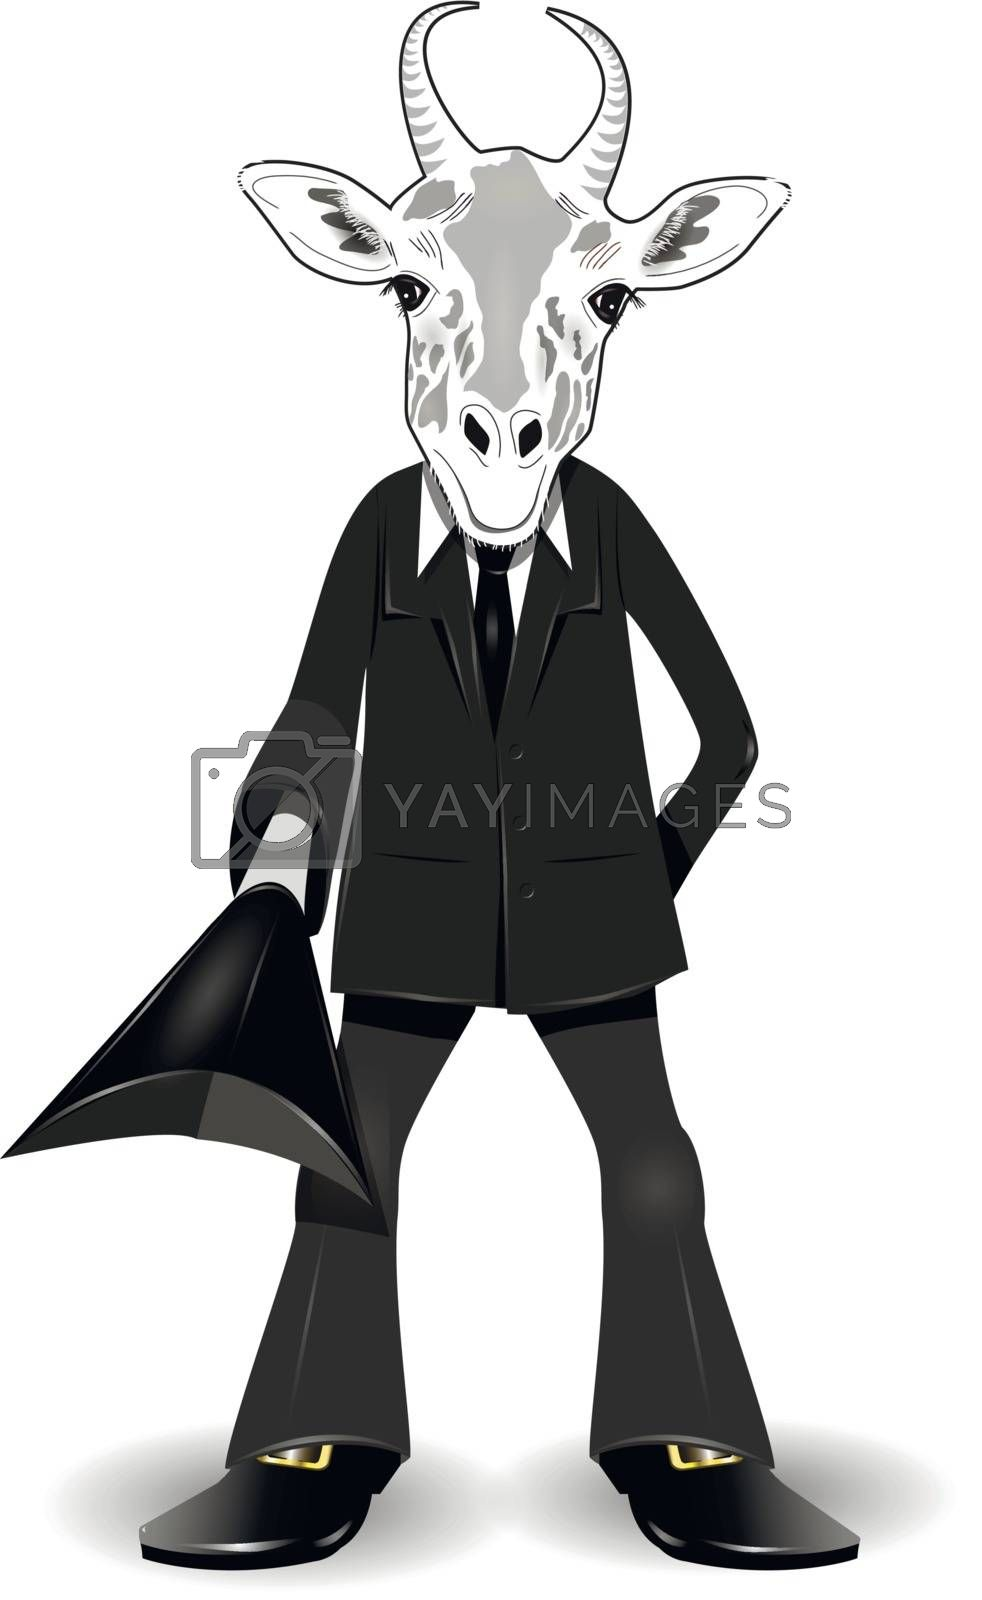 abstract illustration of a goat in a suit